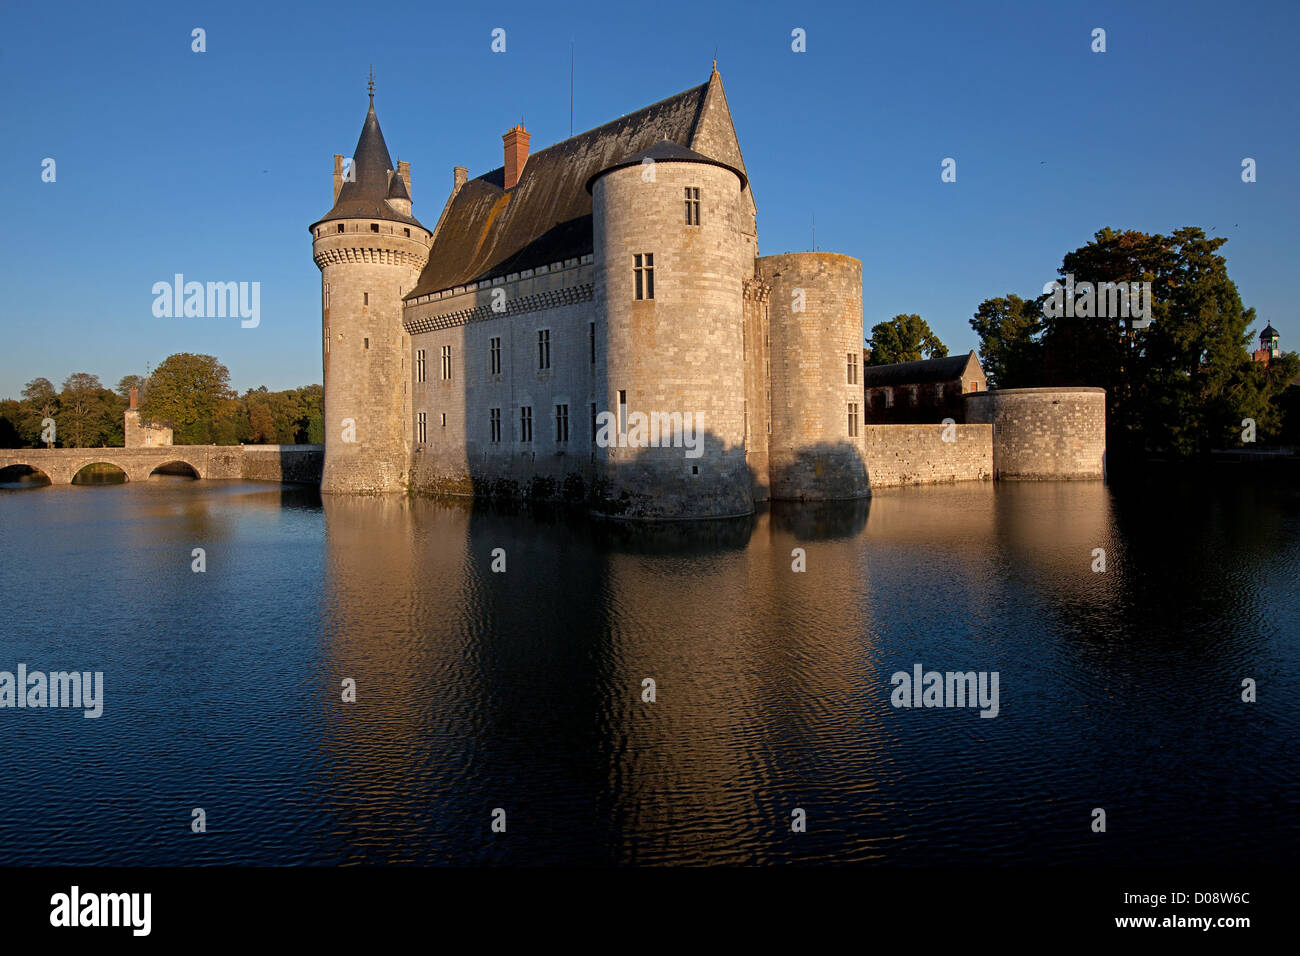 THE RENAISSANCE CHATEAU OF SULLY-SUR-LOIRE AT SUNSET LOIRET (45) FRANCE - Stock Image